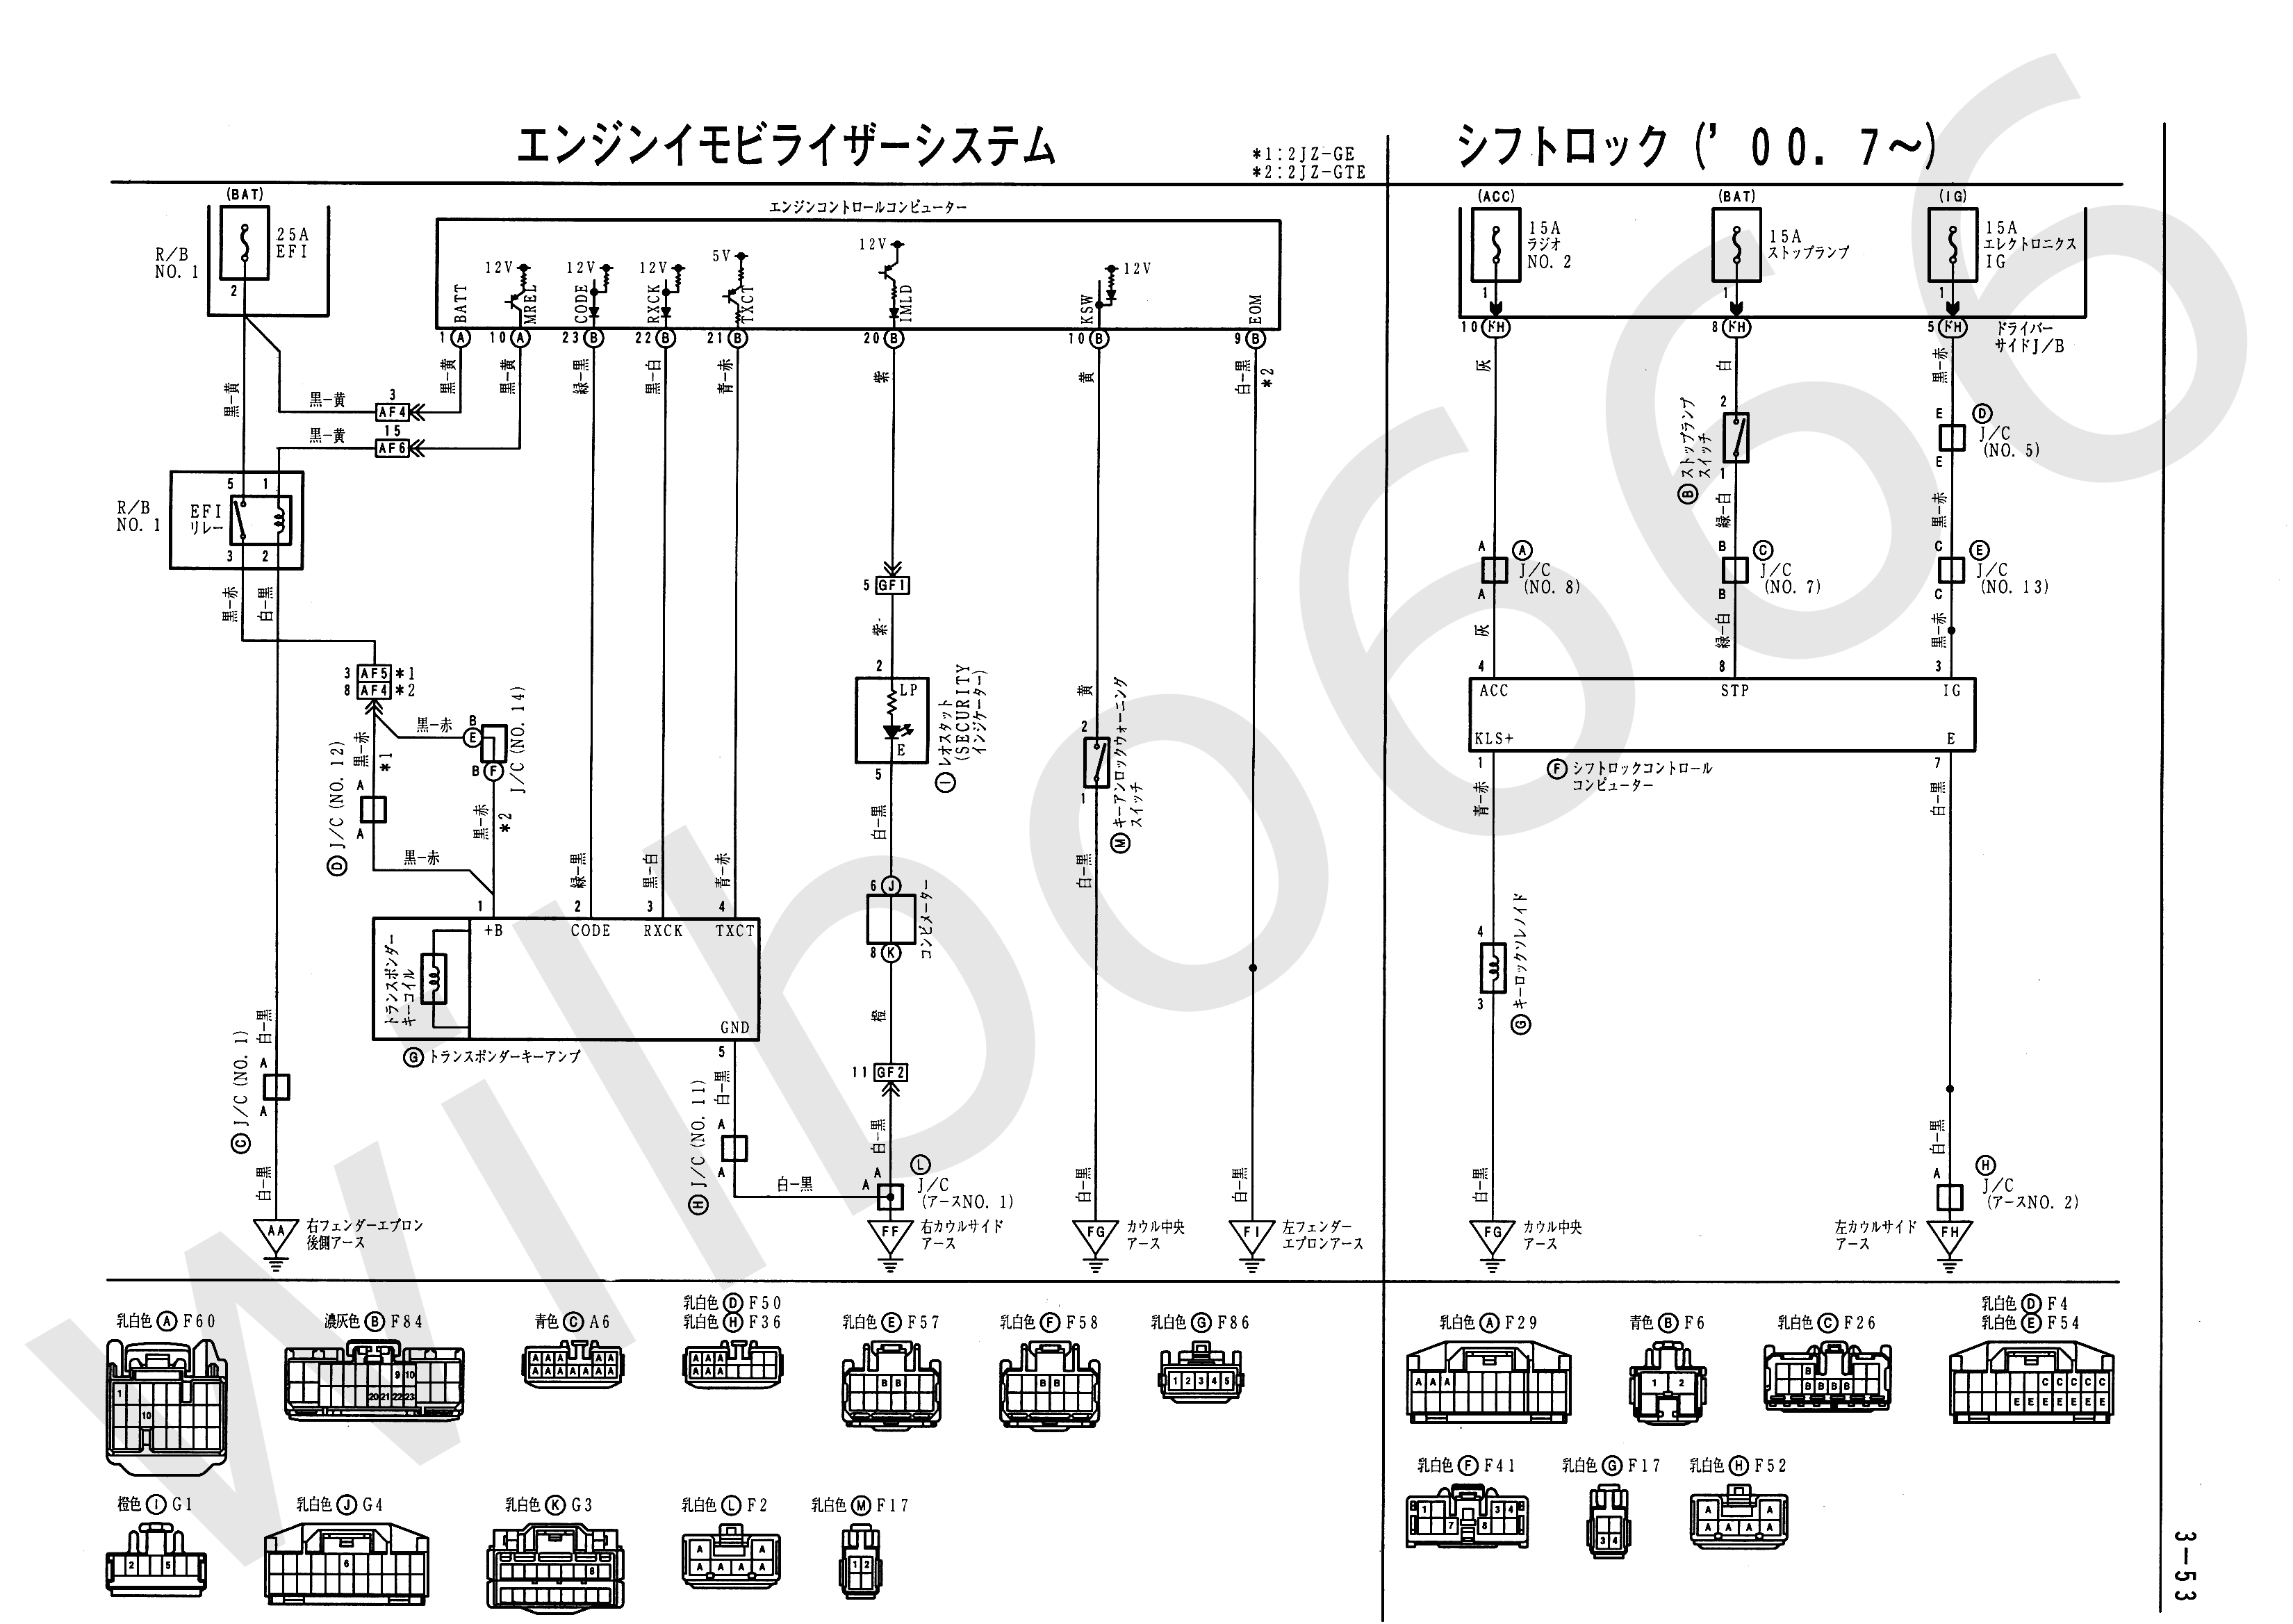 Wilbo666 2jz Gte Vvti Jzs161 Aristo Engine Wiring 3 Sd Rotary Switch Diagram